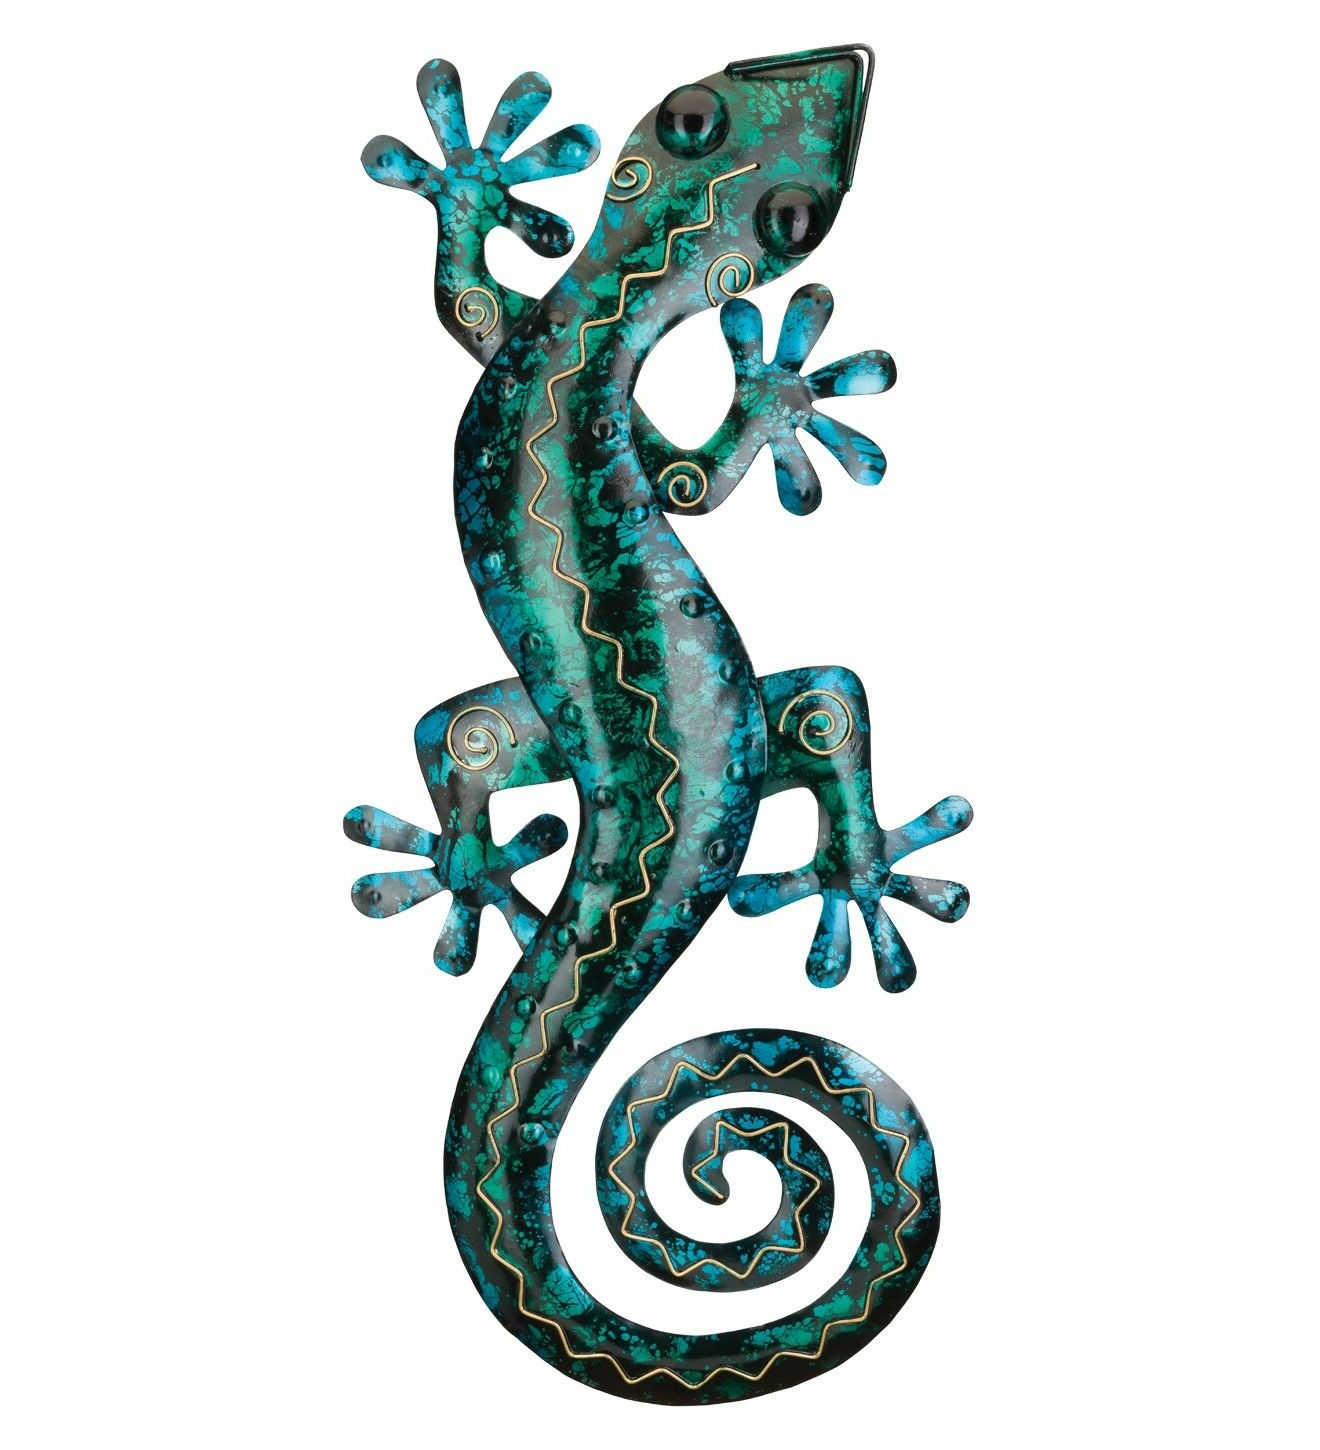 """Gecko Wall Decor Pertaining To Most Popular Gecko Wall Decor – Gecko Wall Decor 29"""" – Turquoise – Regal  (View 10 of 20)"""